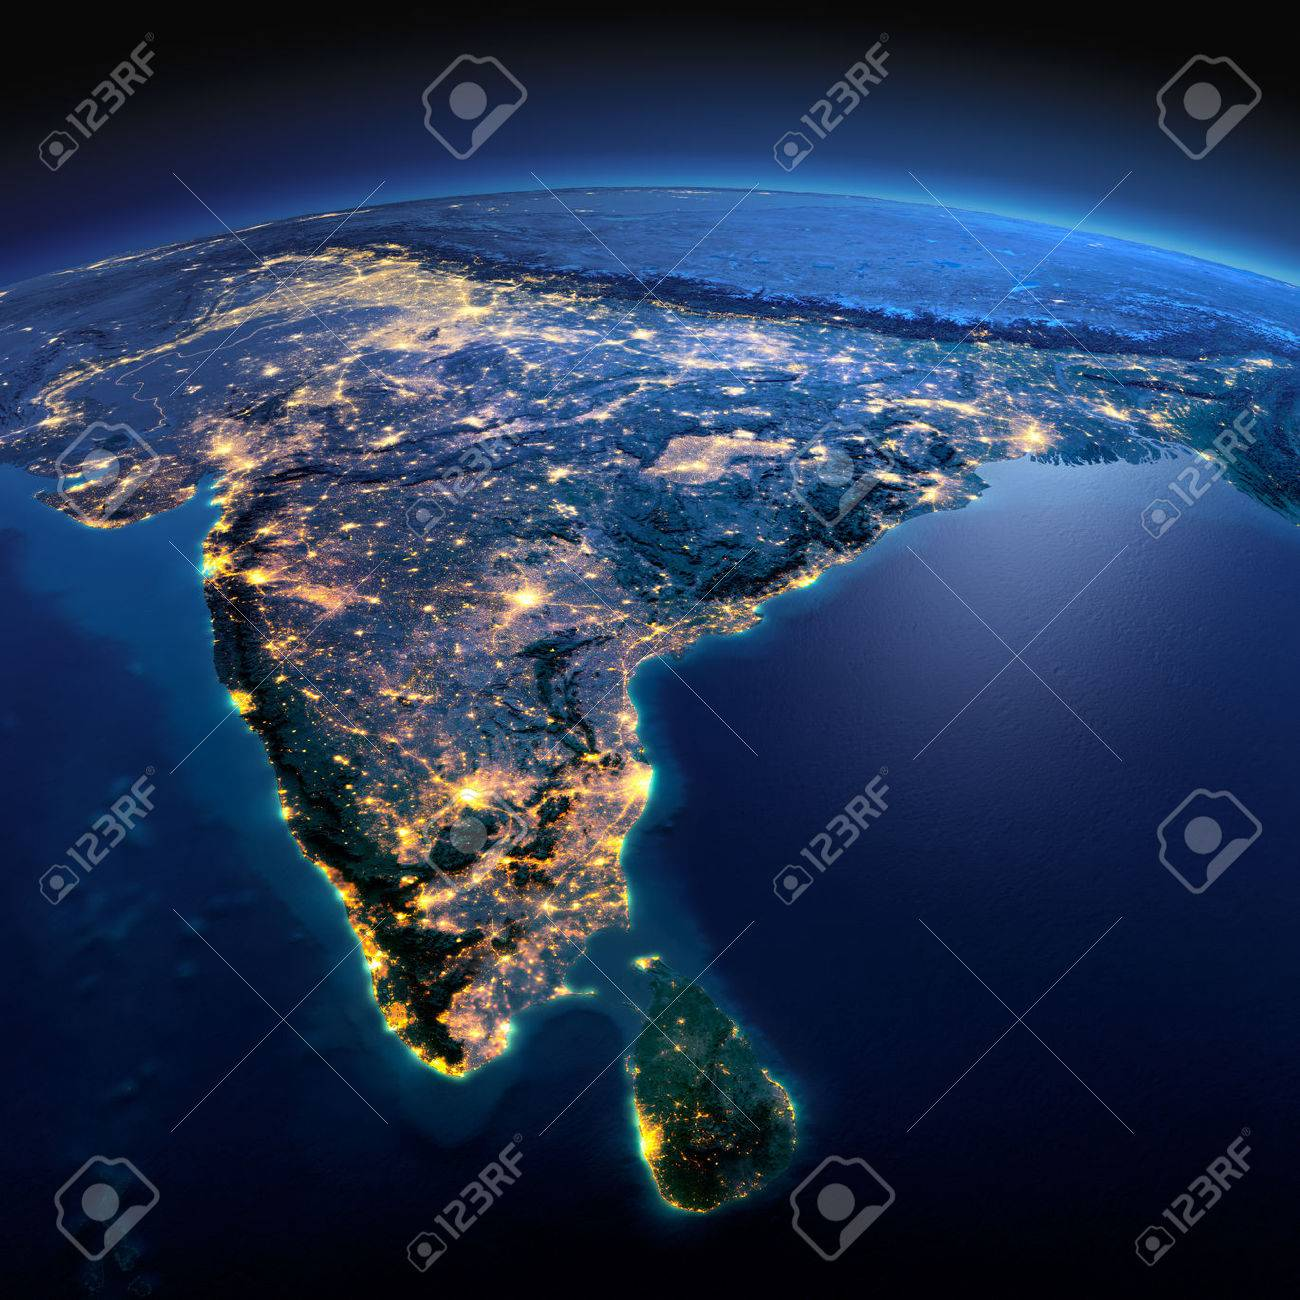 Night planet Earth with precise detailed relief and city lights illuminated by moonlight. India and Sri Lanka. - 50354080